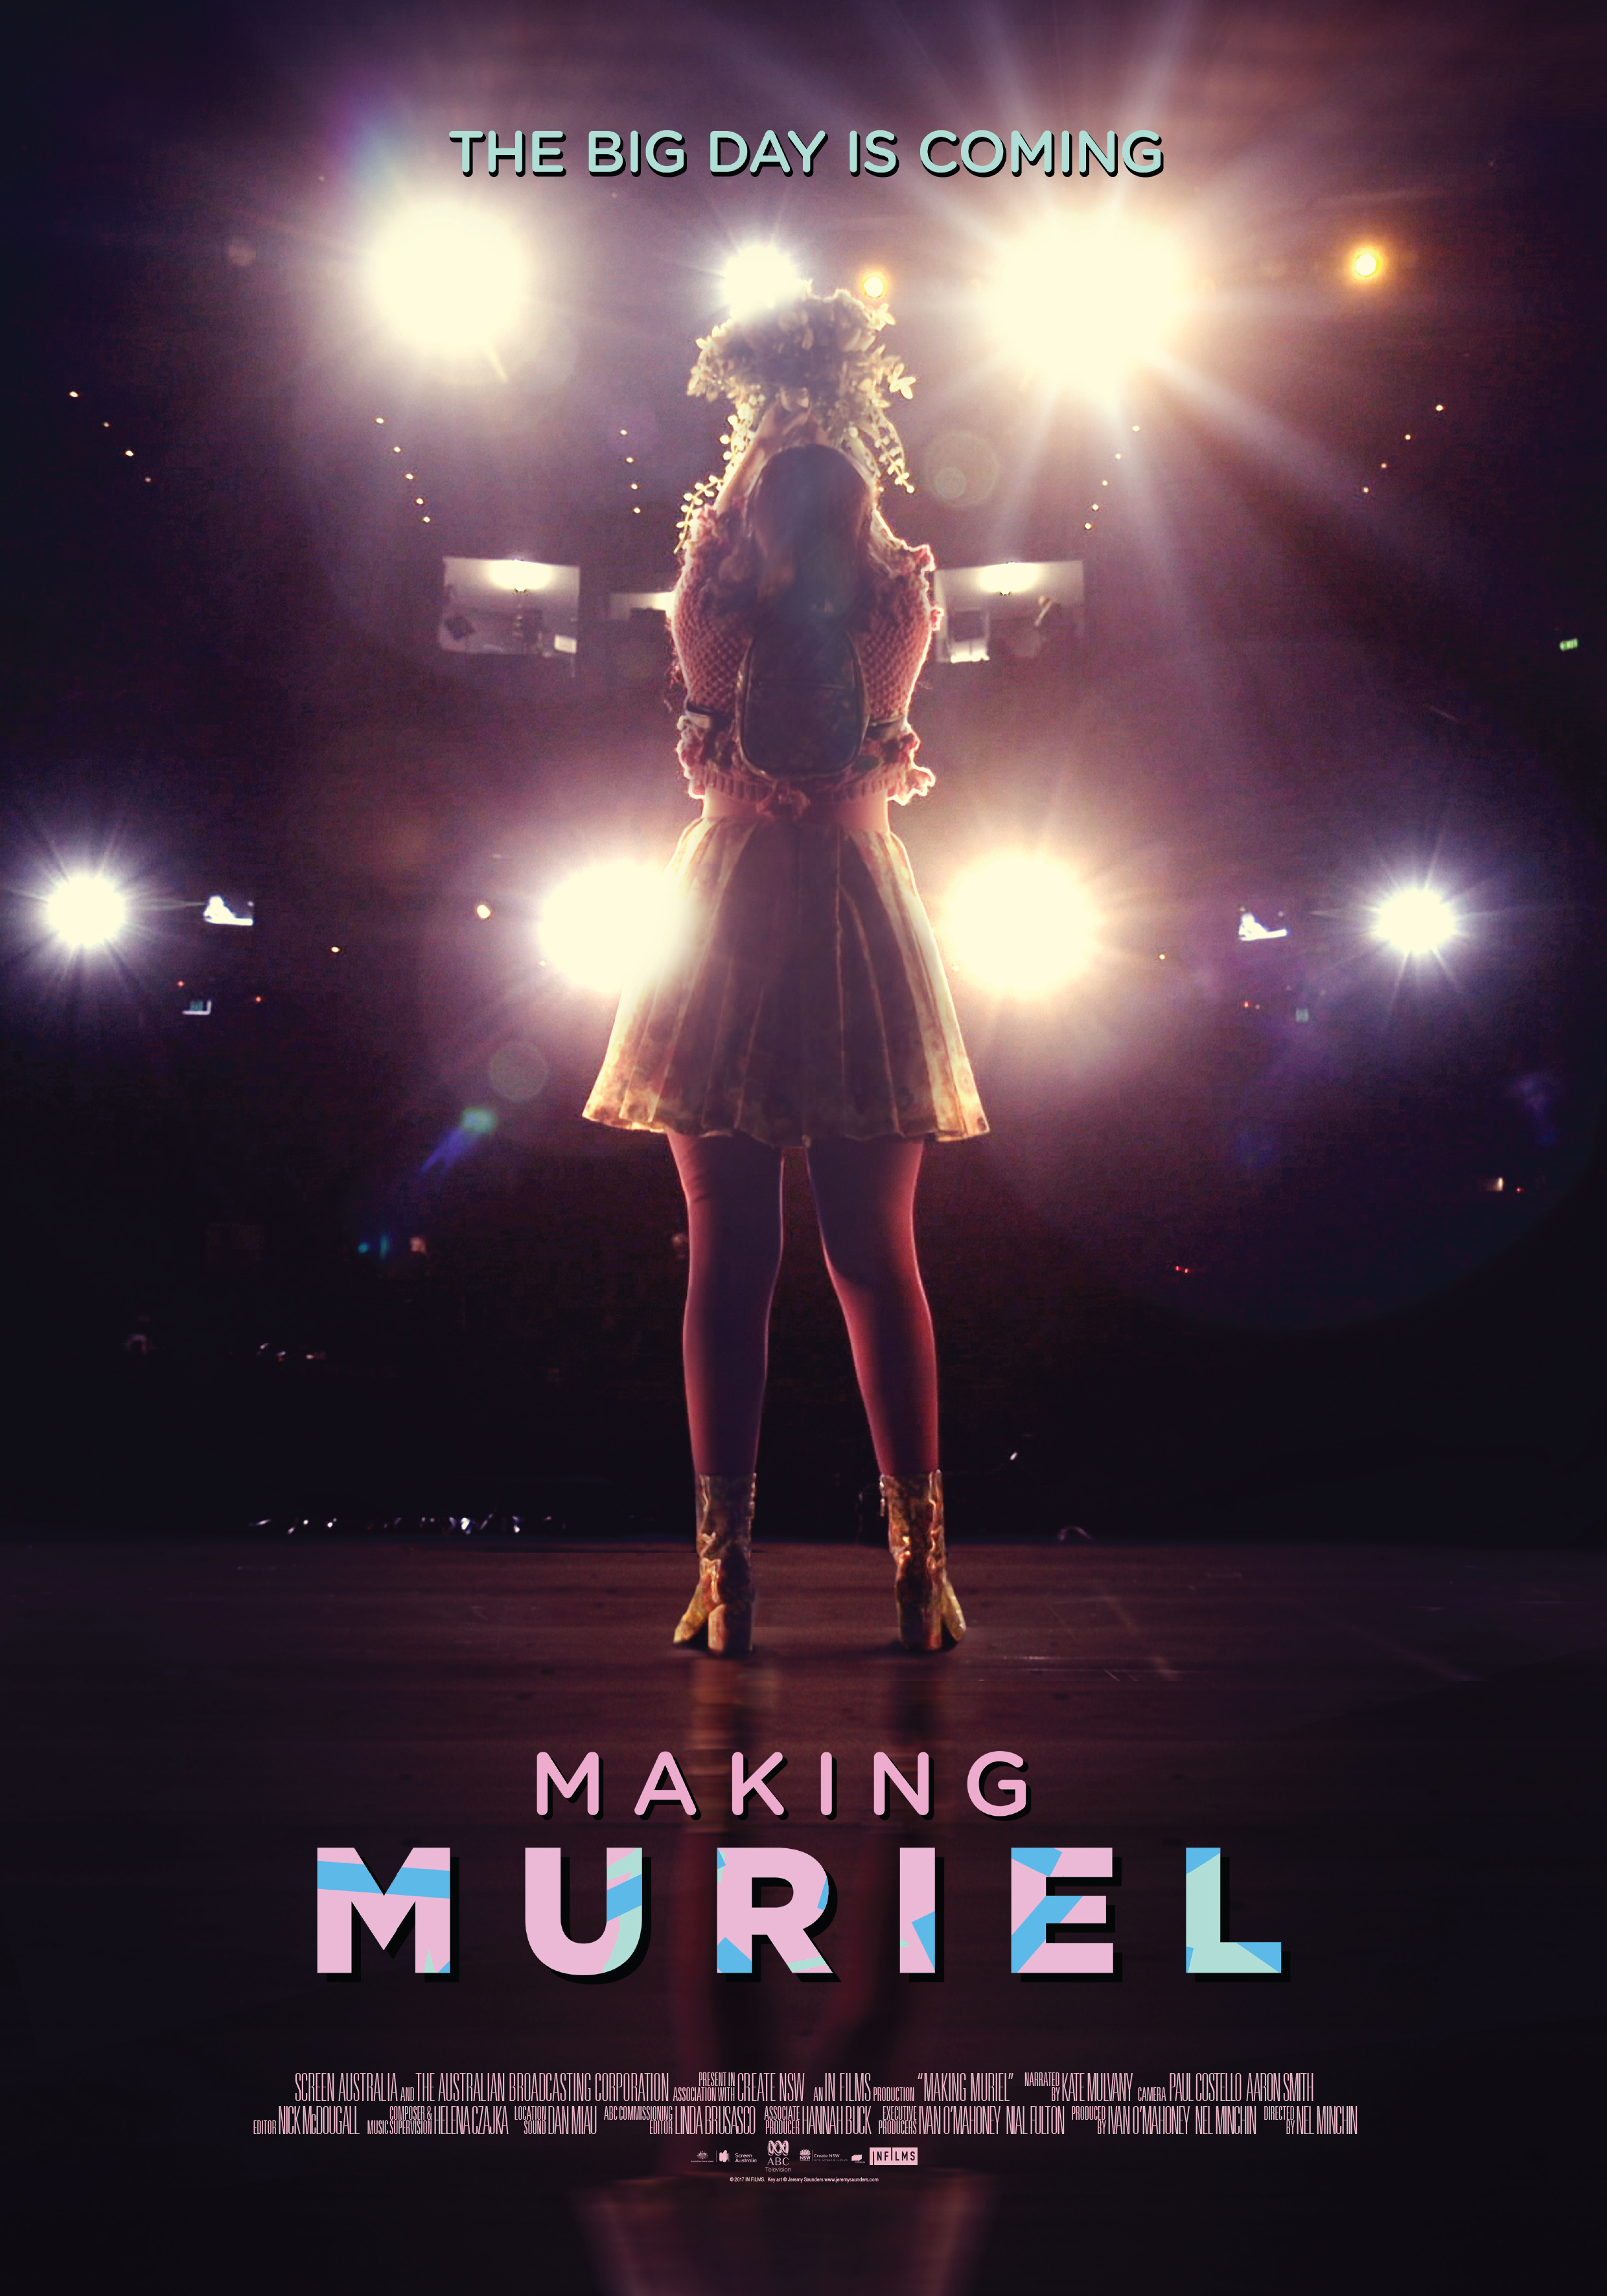 MAKING MURIEL (2017)